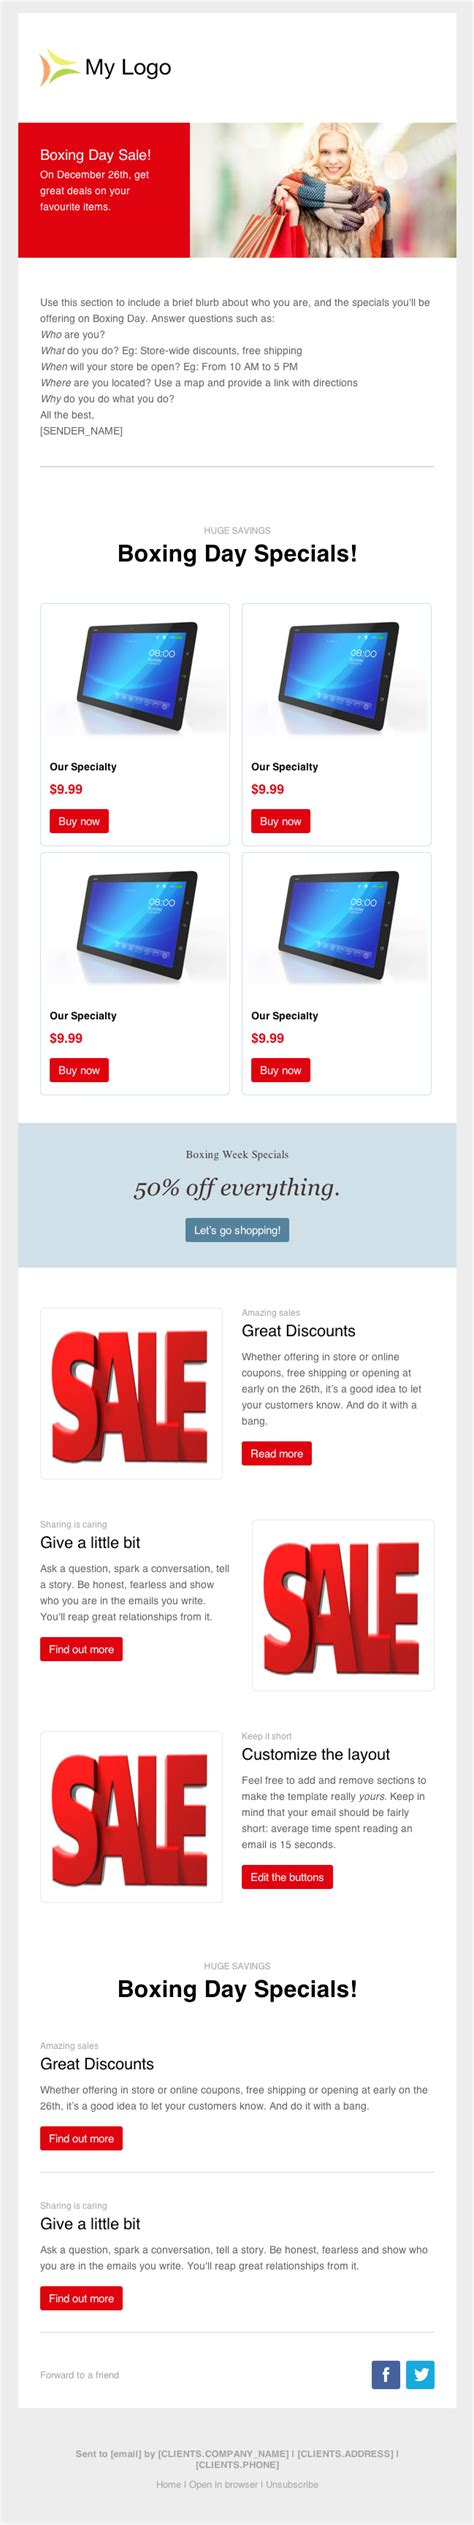 sale template word preview boxing day newsletter template cakemail